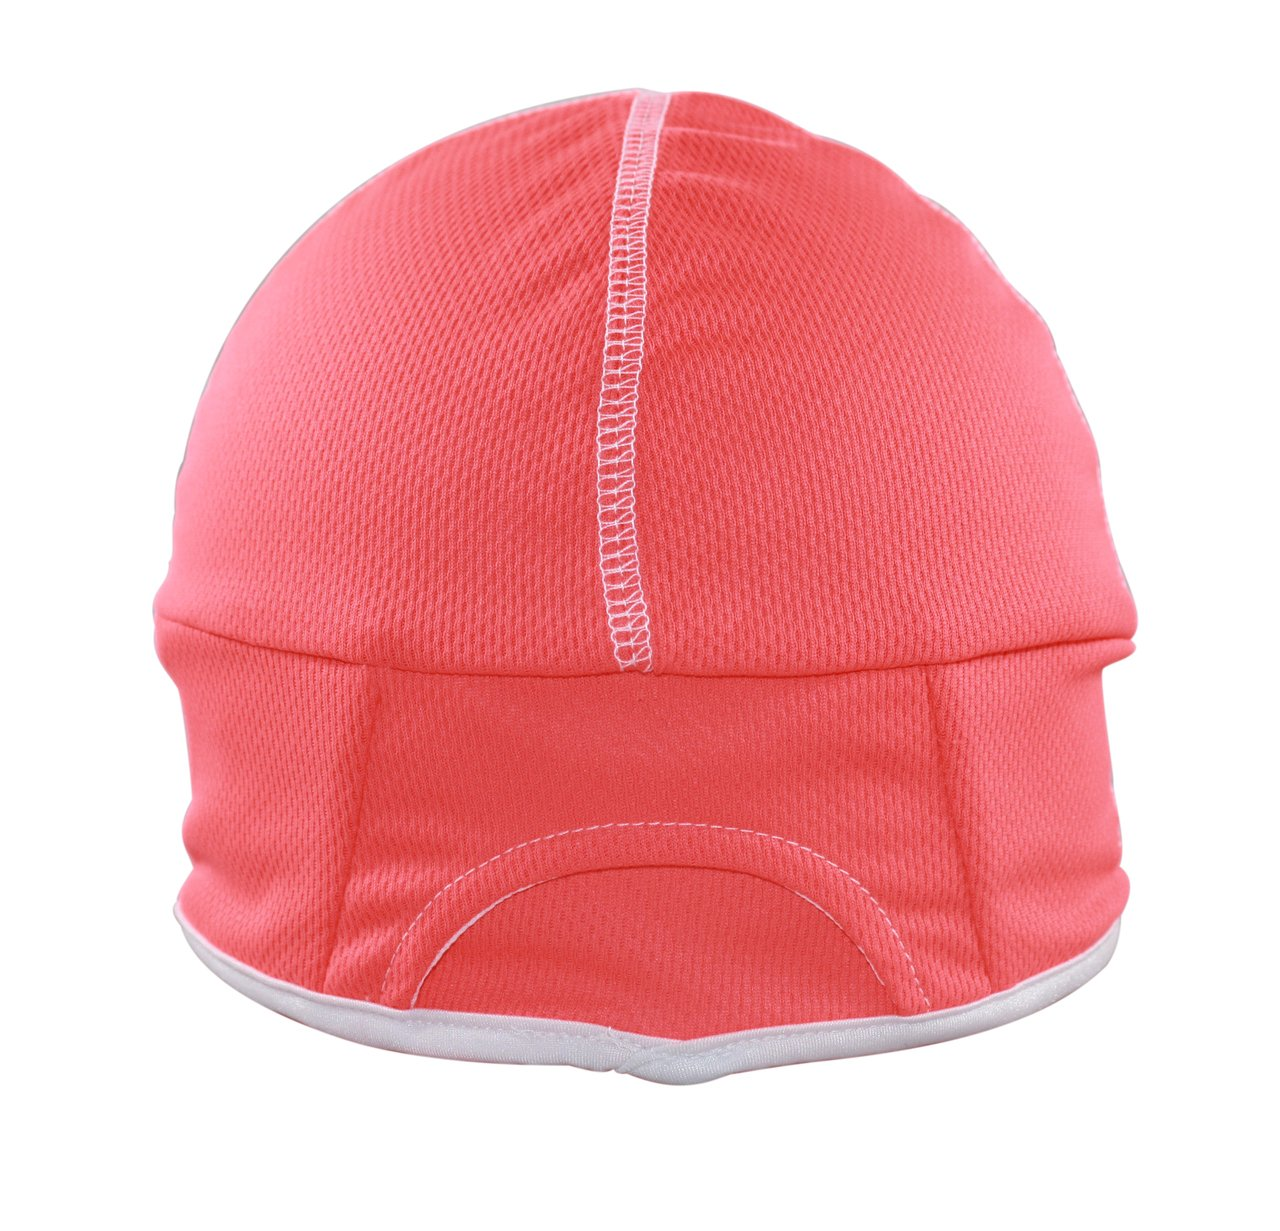 Headsweats Stirnband Thermal Reversible Beanie 0812068001864